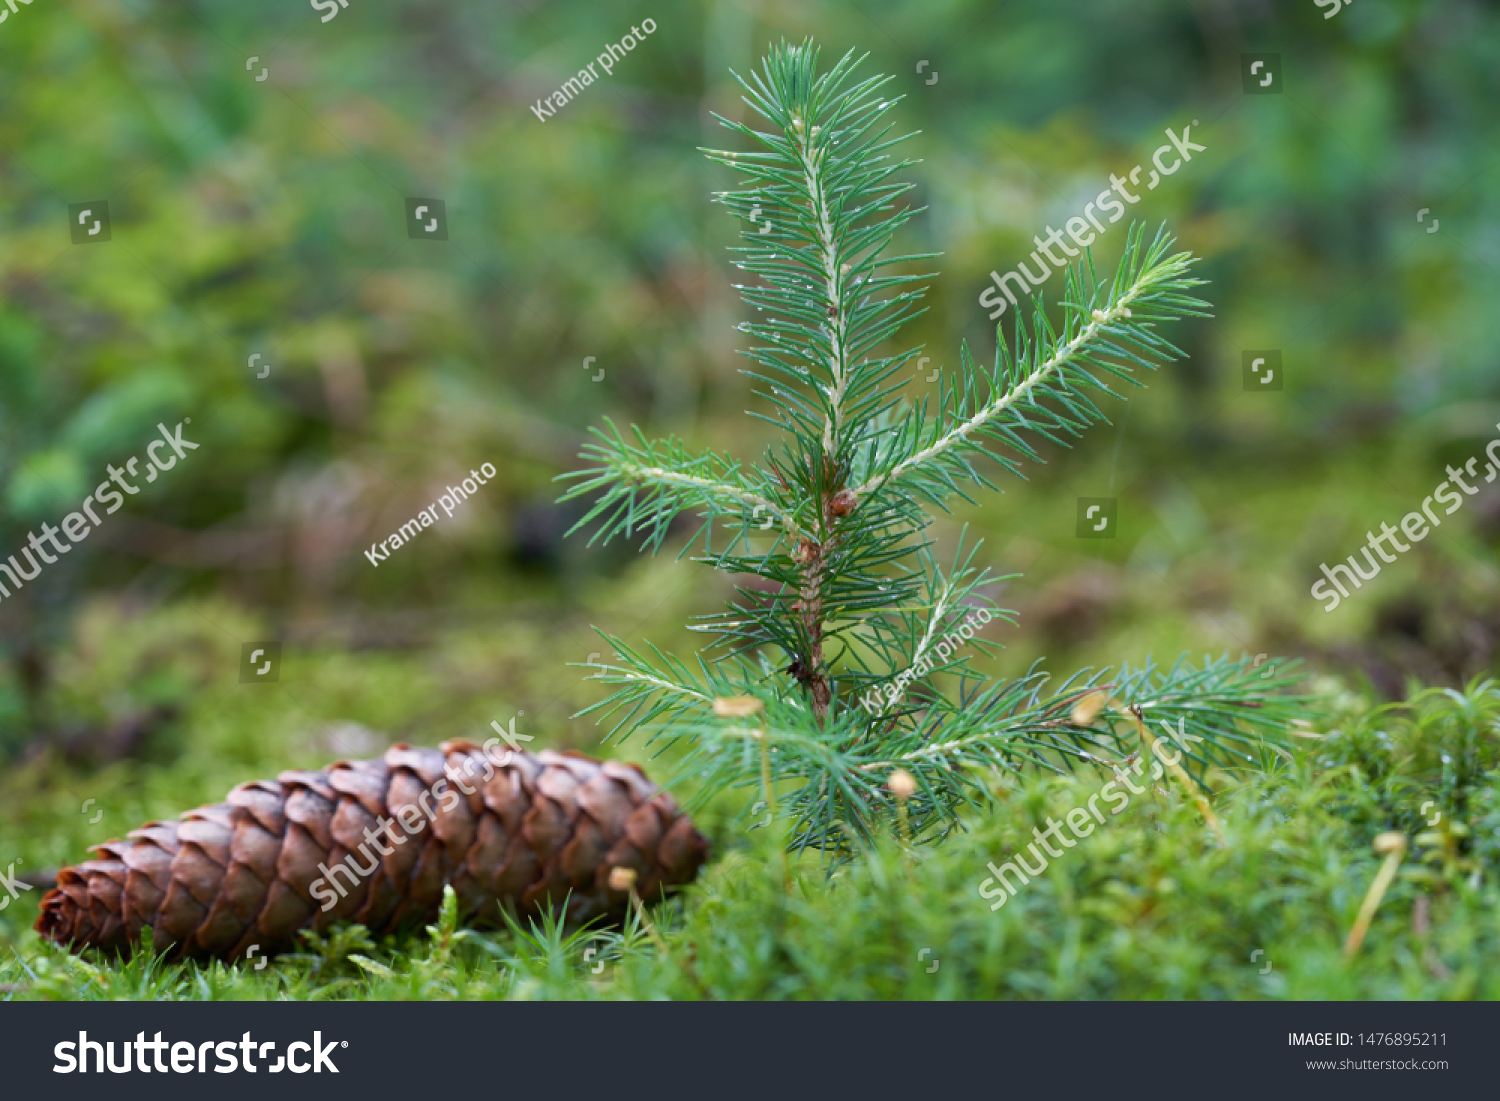 Young spruce tree Picea abies growing in the moss. Also known as Norway spruce or European spruce. Spruce cone on the moss.